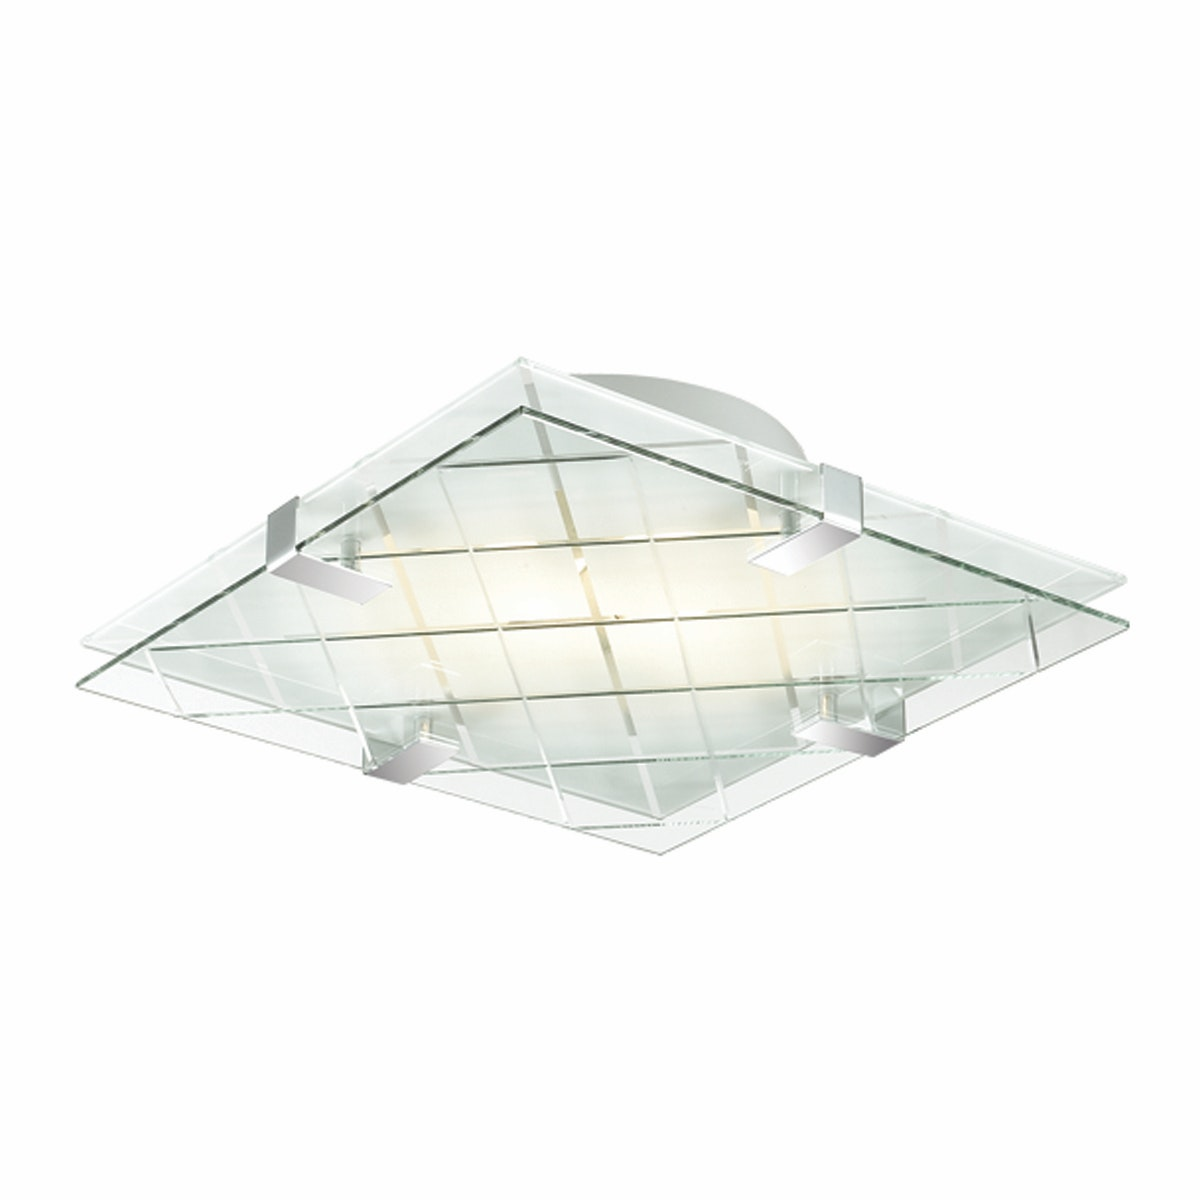 3+Projects Lampu Plafon / Ceiling Lamp Double Glass 3+DL-EVEN-SU31-AH